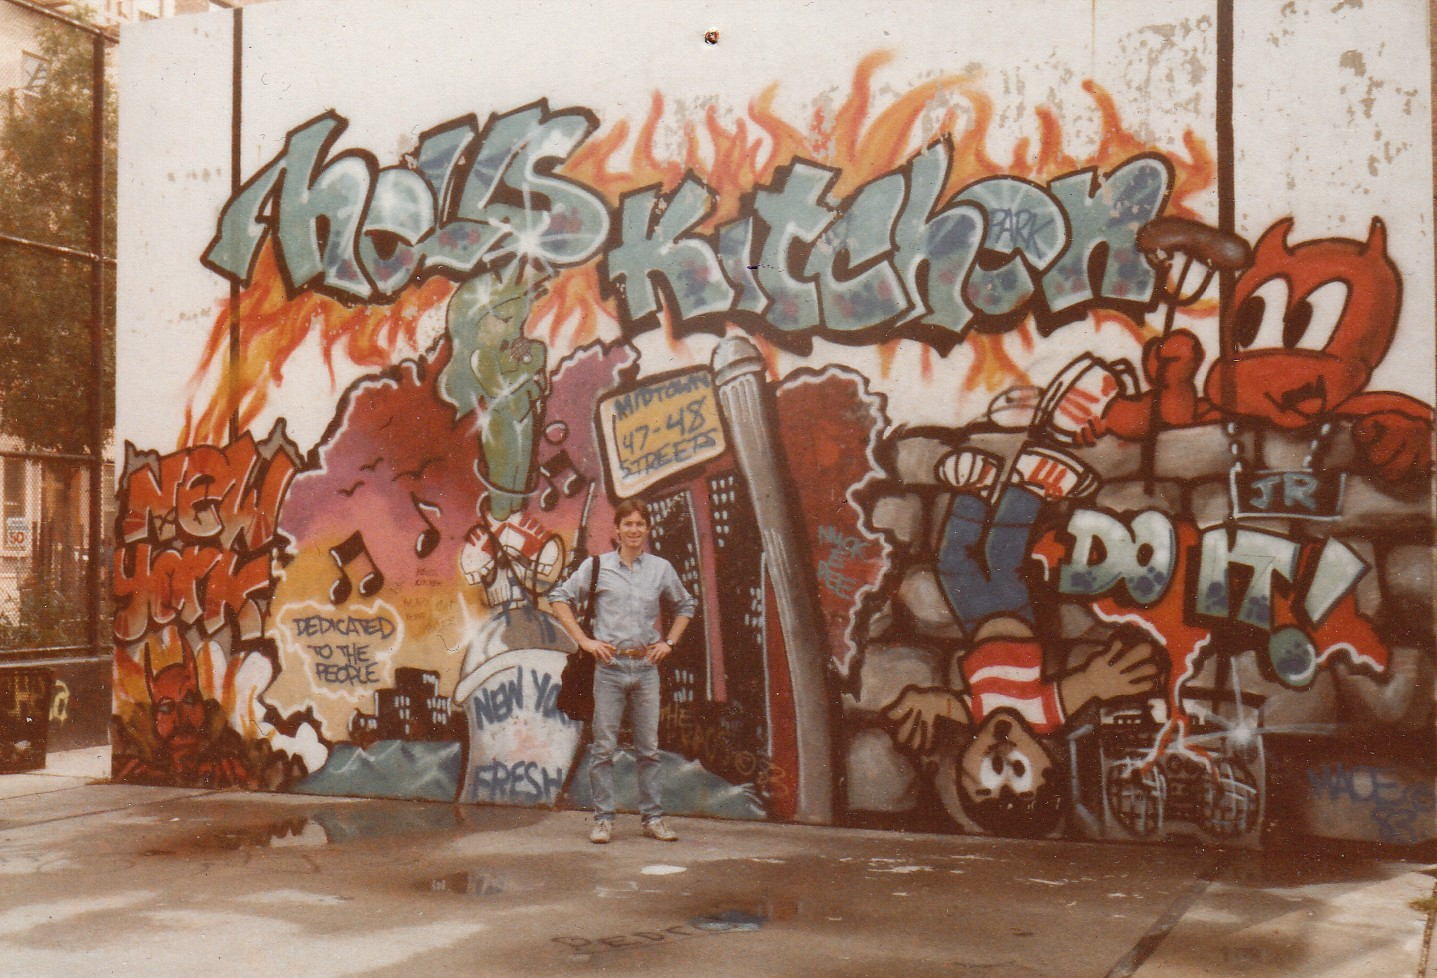 Graffiti from hells kitchen nyc 1980s